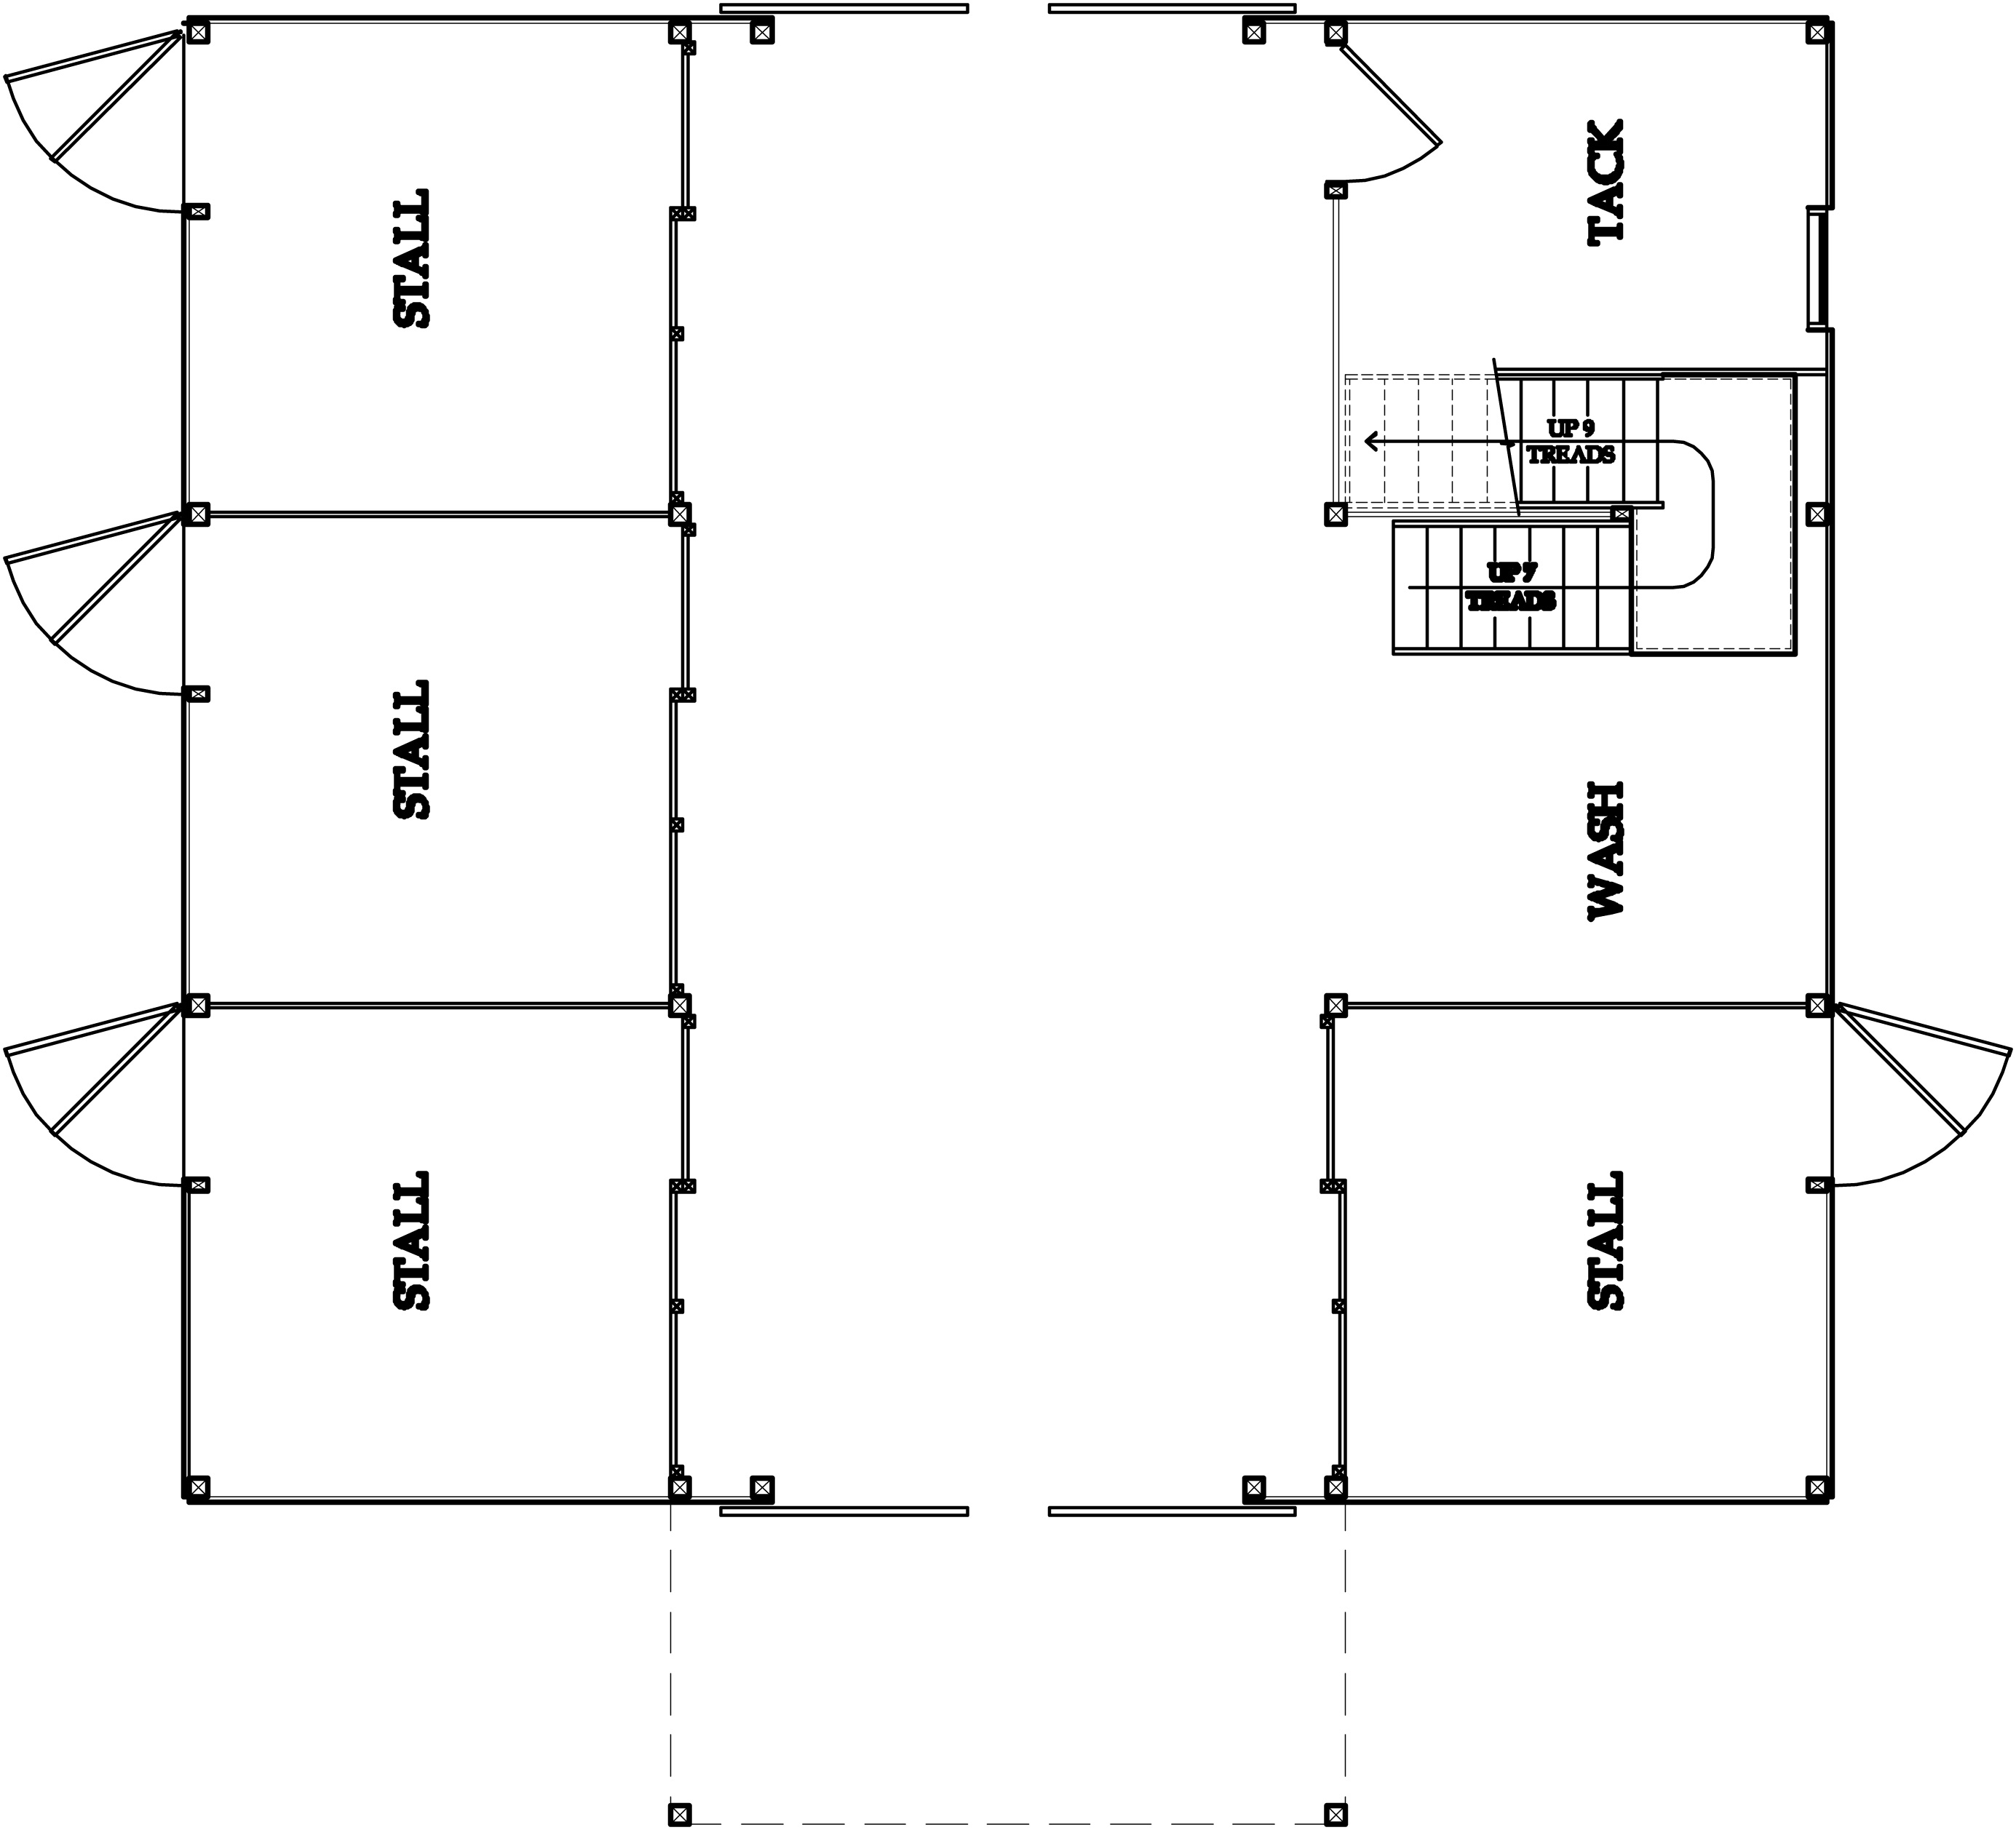 Horse barn floorplans house plans home designs for Barn floor plan